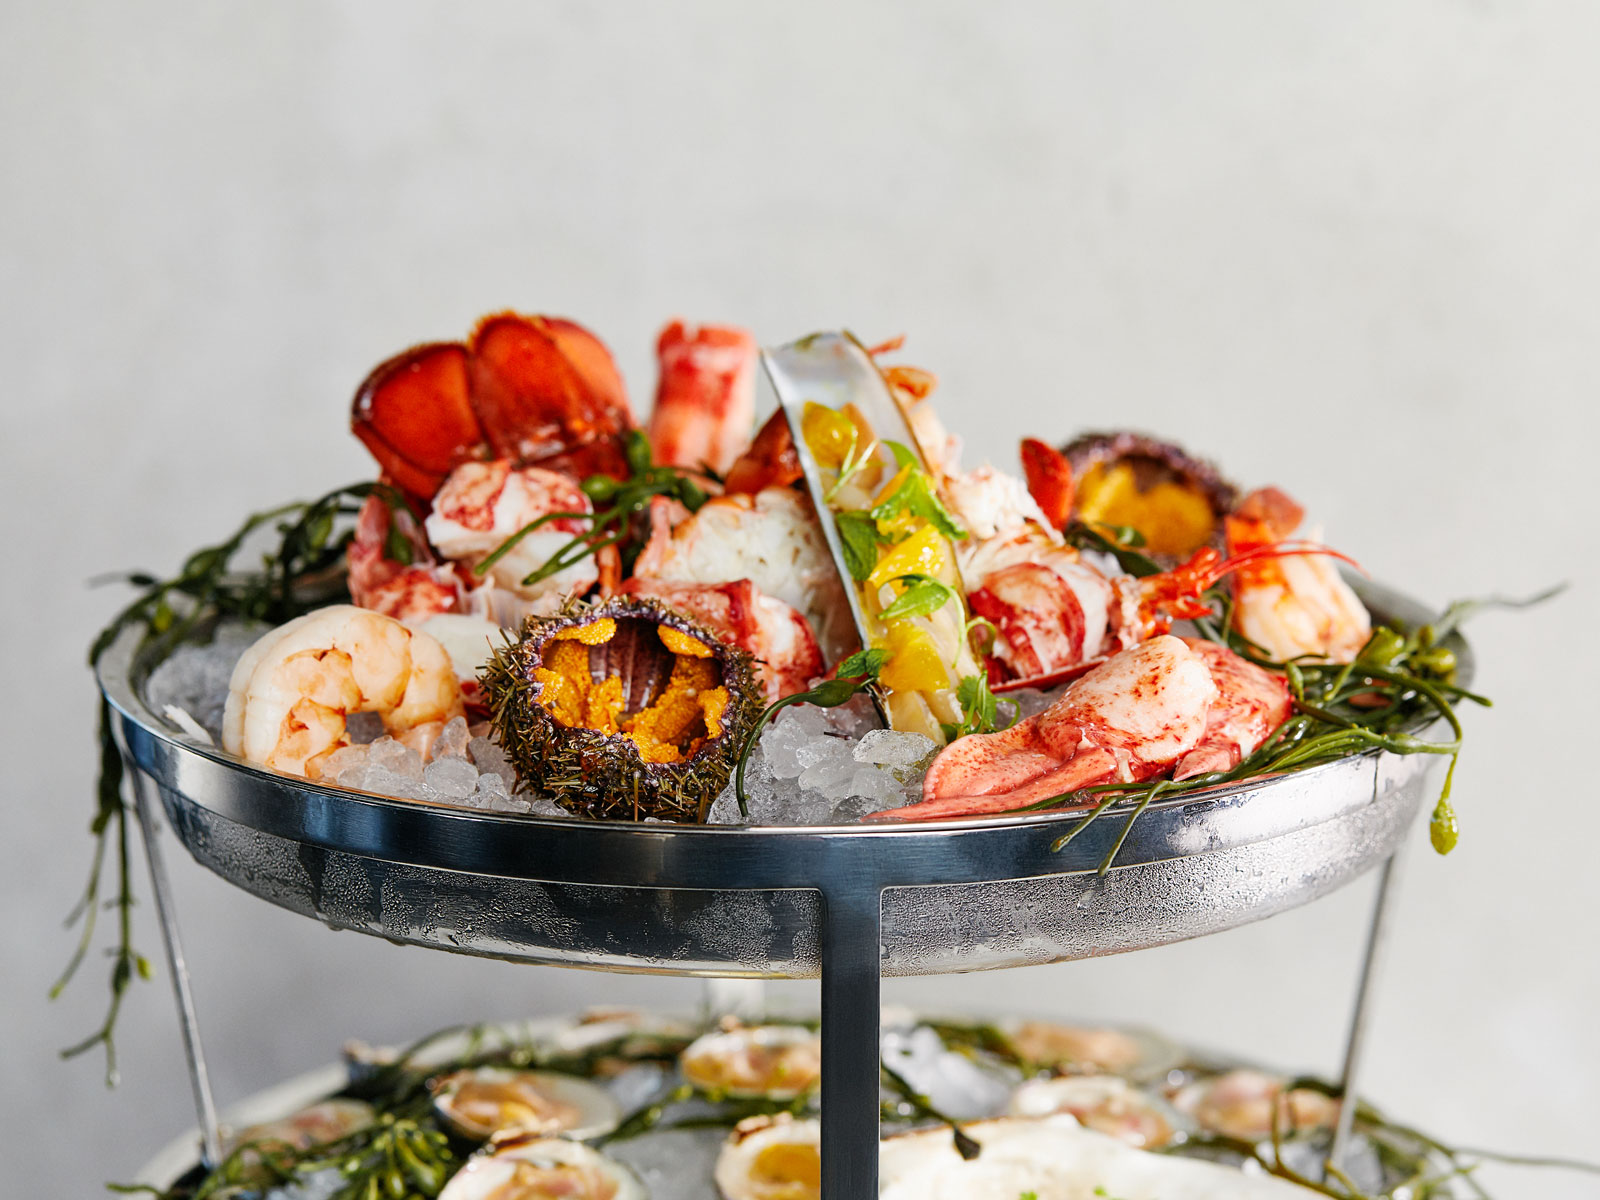 Jean-Georges Vongerichten's Massive New Seafood Restaurant Is Open in New York